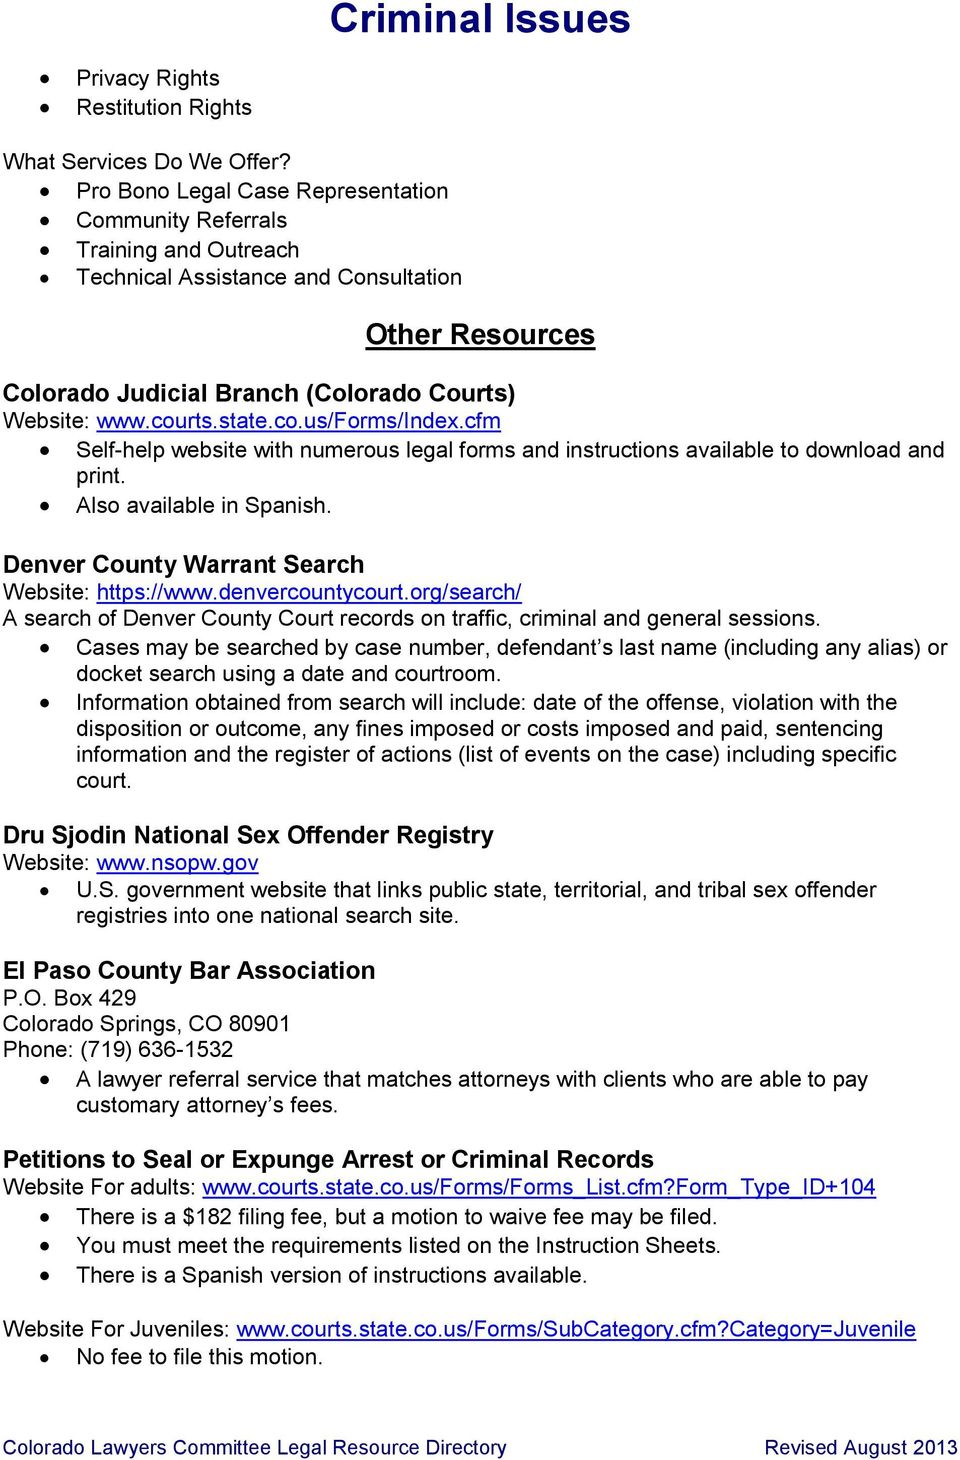 co.us/forms/index.cfm Self-help website with numerous legal forms and instructions available to download and print. Also available in Spanish. Denver County Warrant Search Website: https://www.